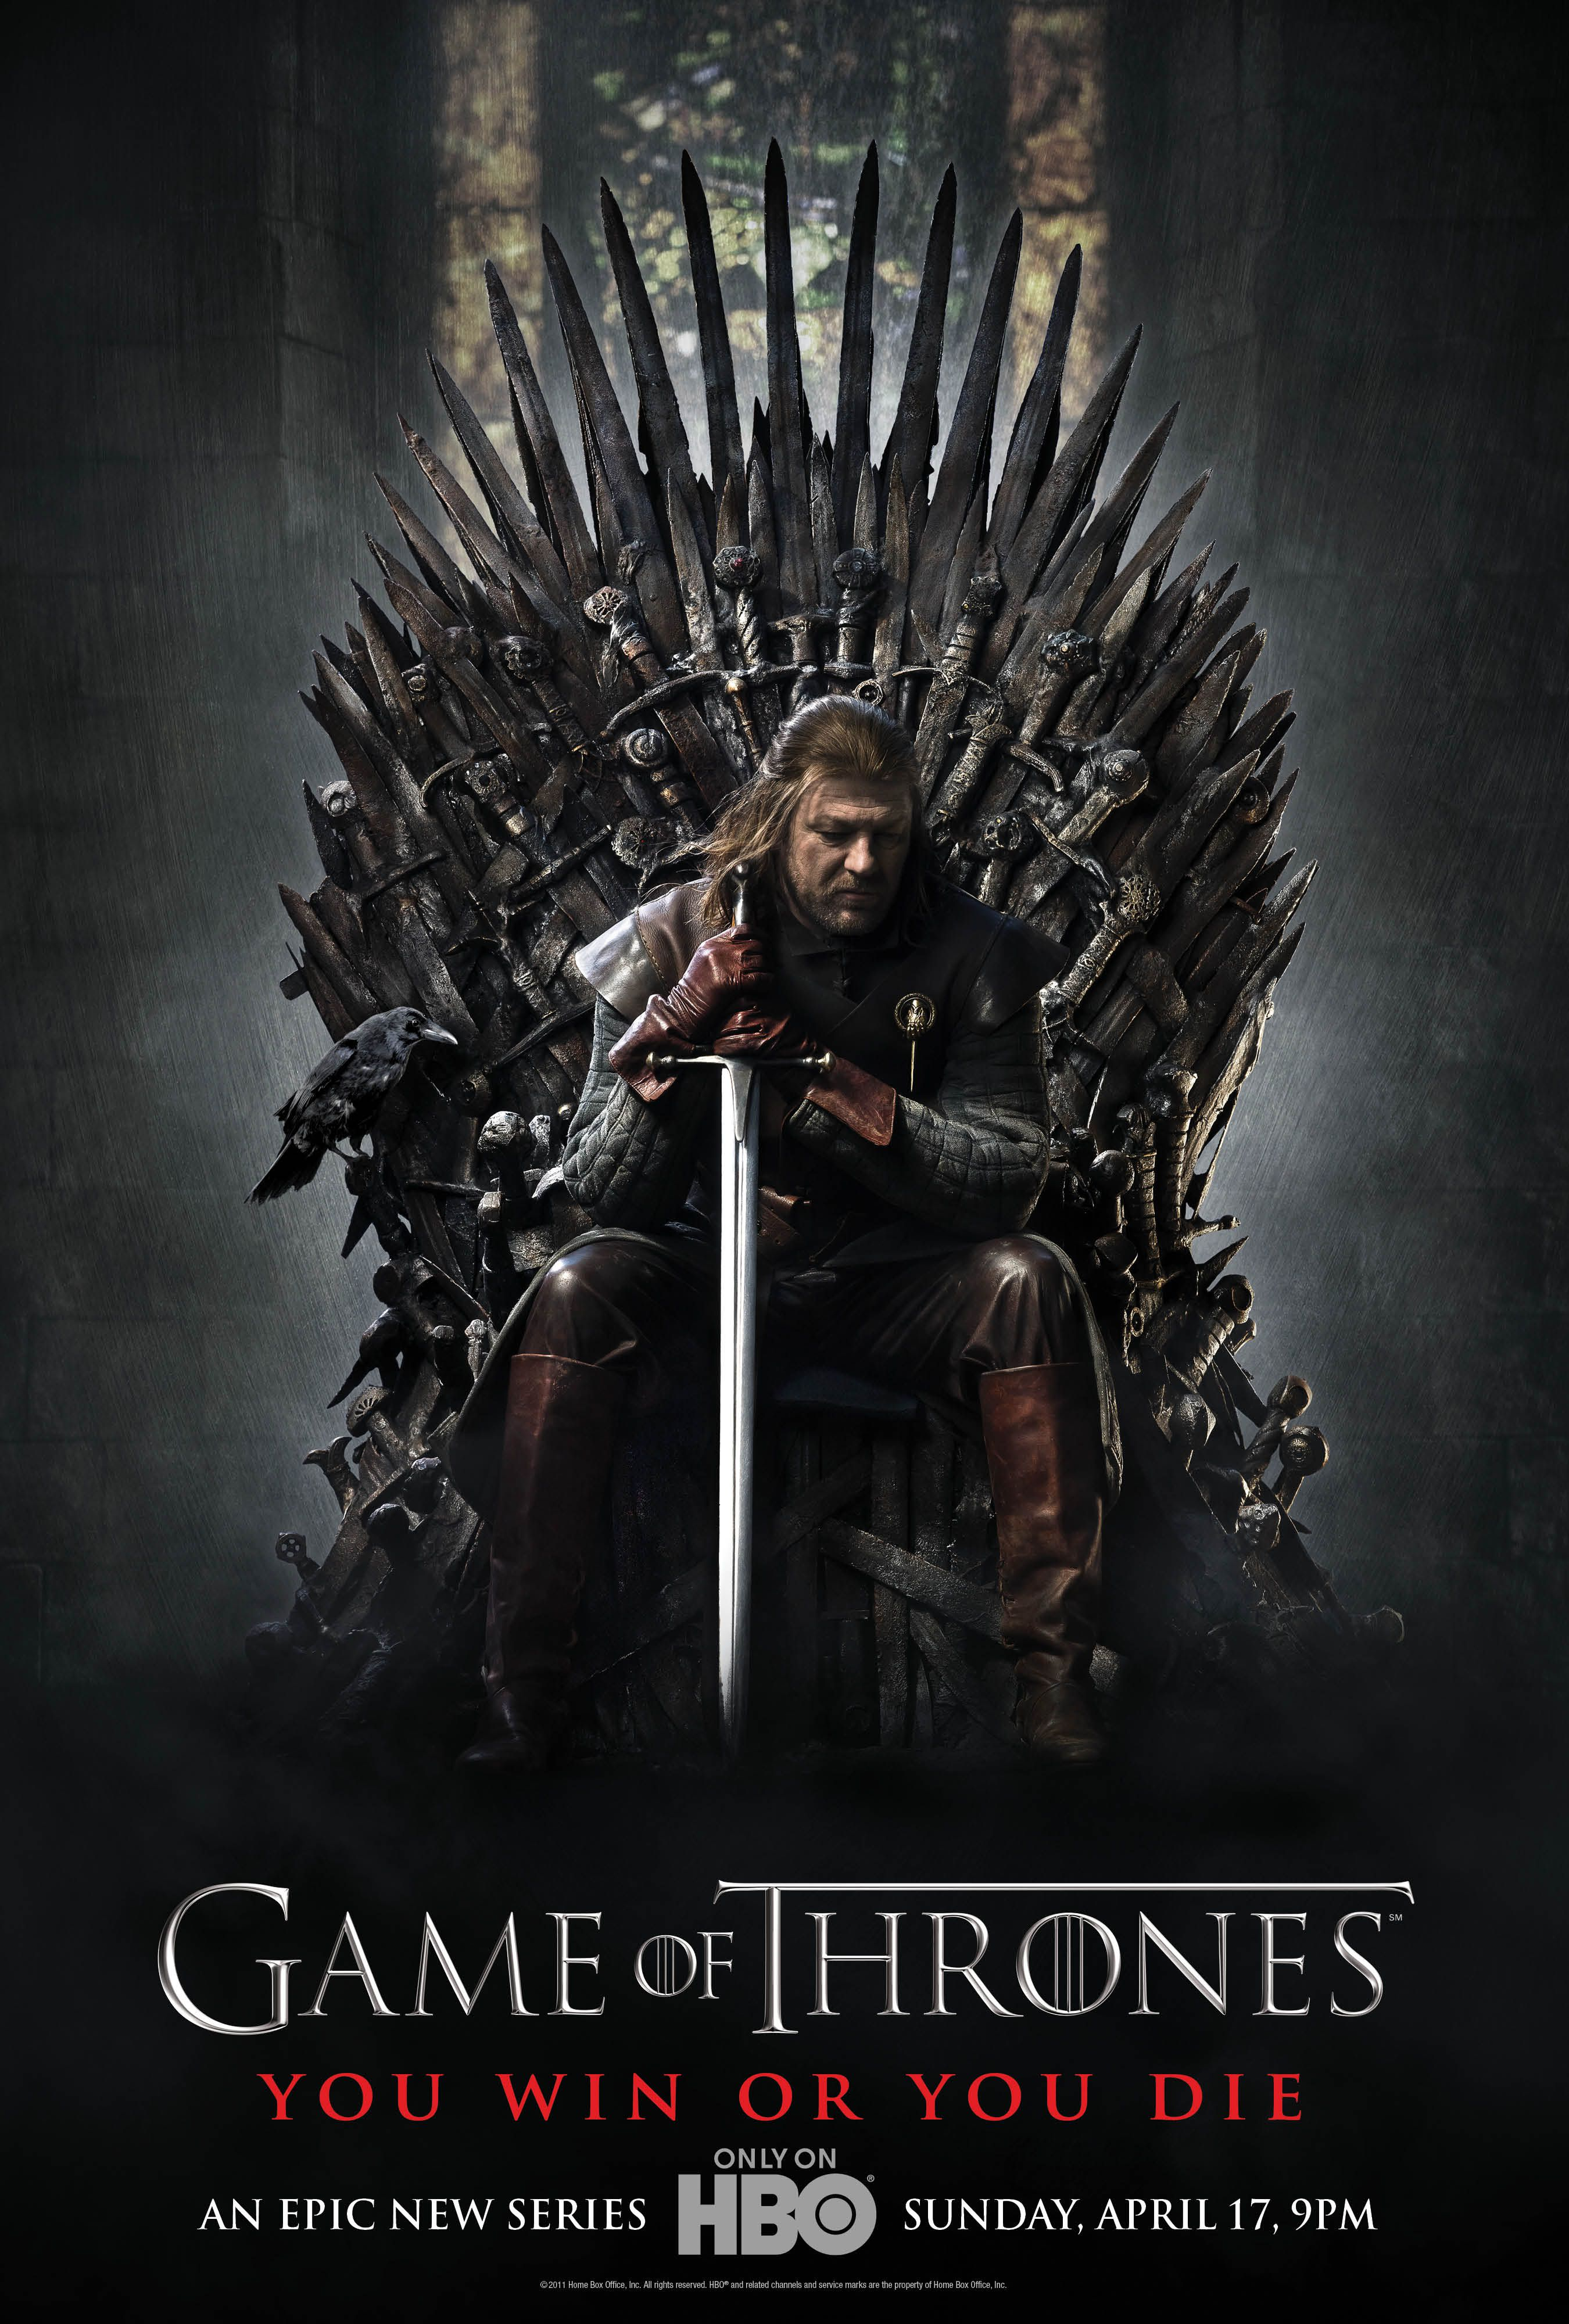 Game of Thrones - Série (2010) streaming VF gratuit complet